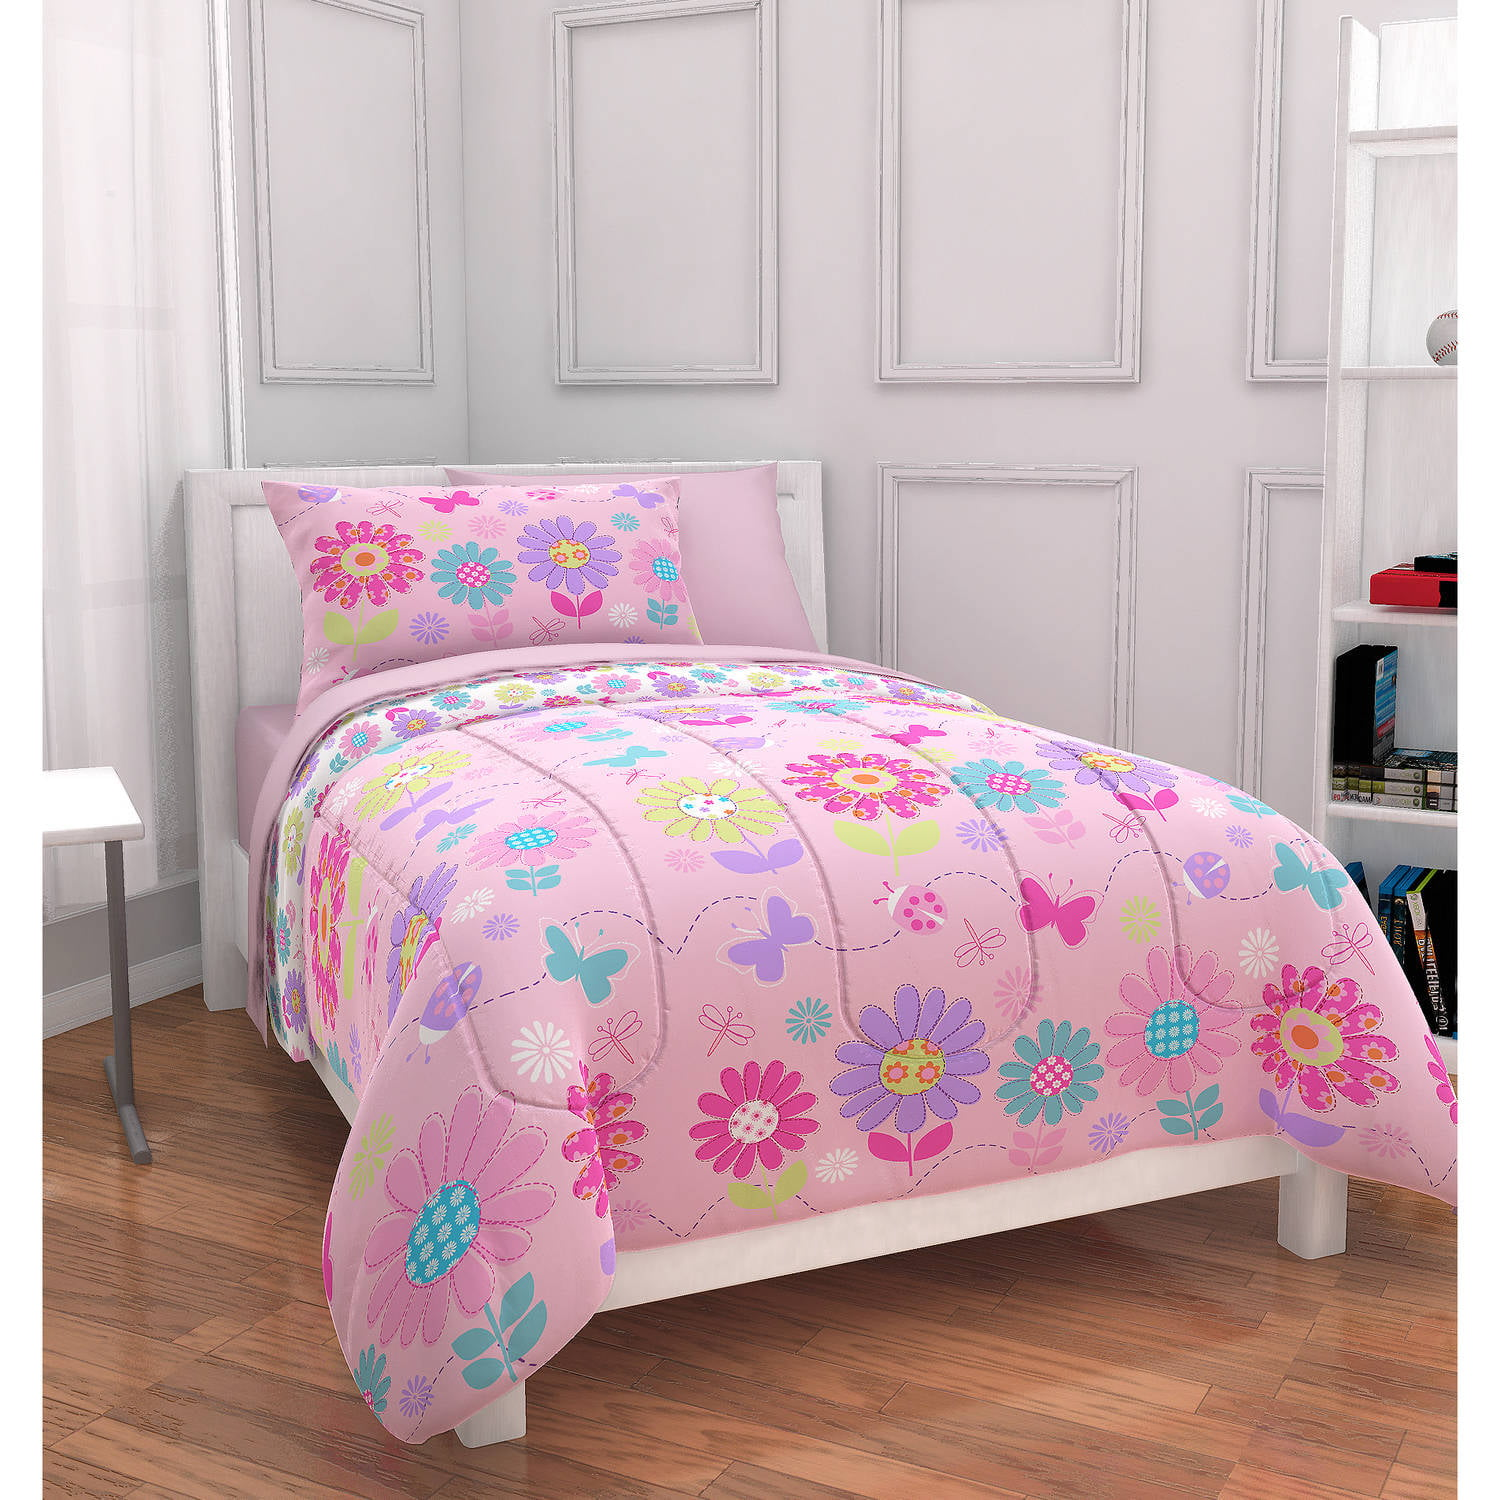 Superb Mainstays Kids Daisy Floral Bed In A Bag Bedding Set   Walmart.com